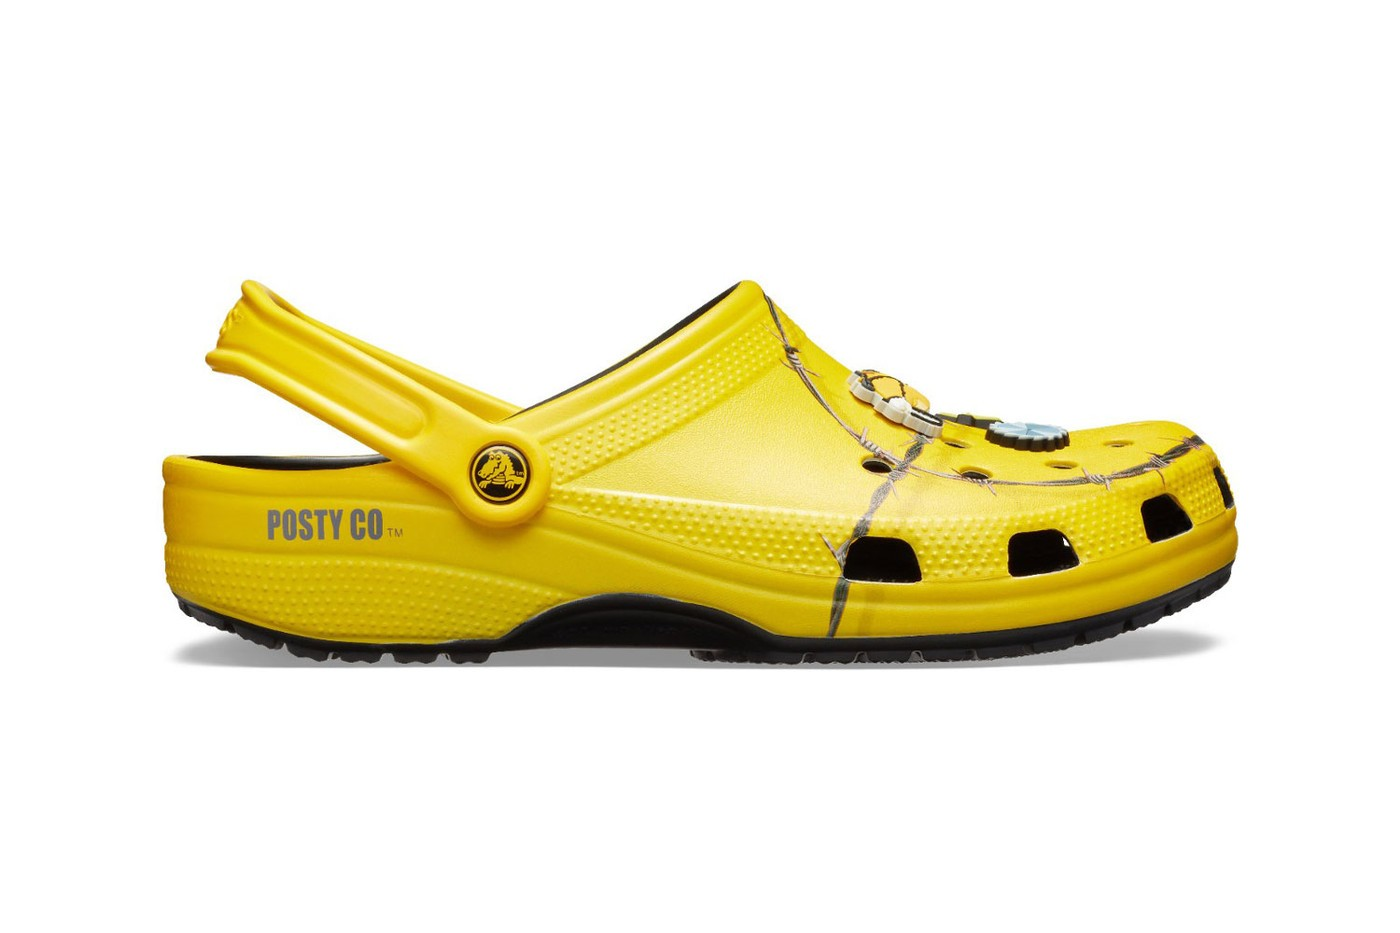 Best Crocs Shoe Collaborations Balenciaga Beams Post Malone Chinatown Market Clog Rubber Shoe Barneys Christopher Kane